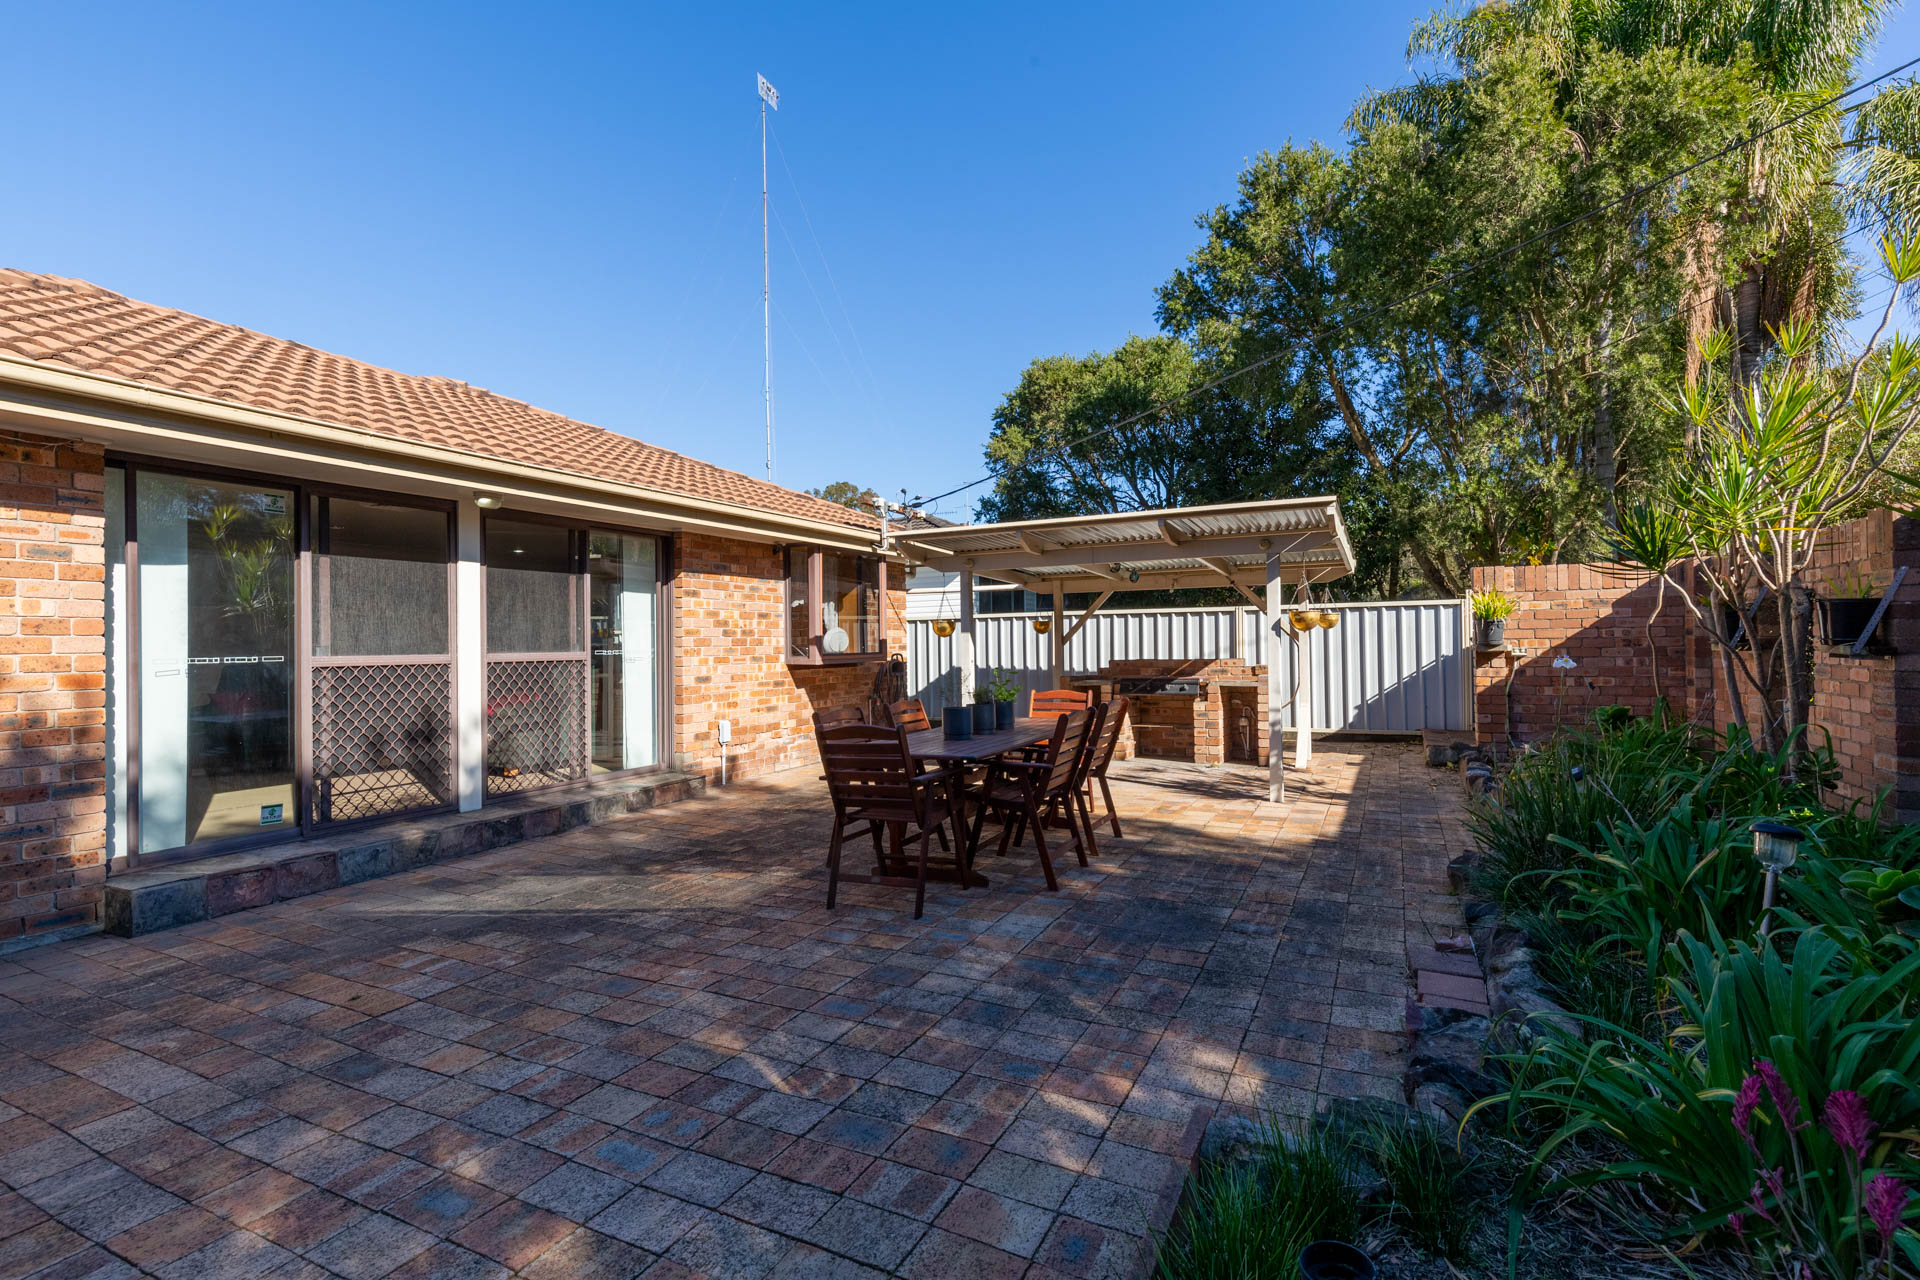 70 Medcalf St   Warners Bay (2 of 18)